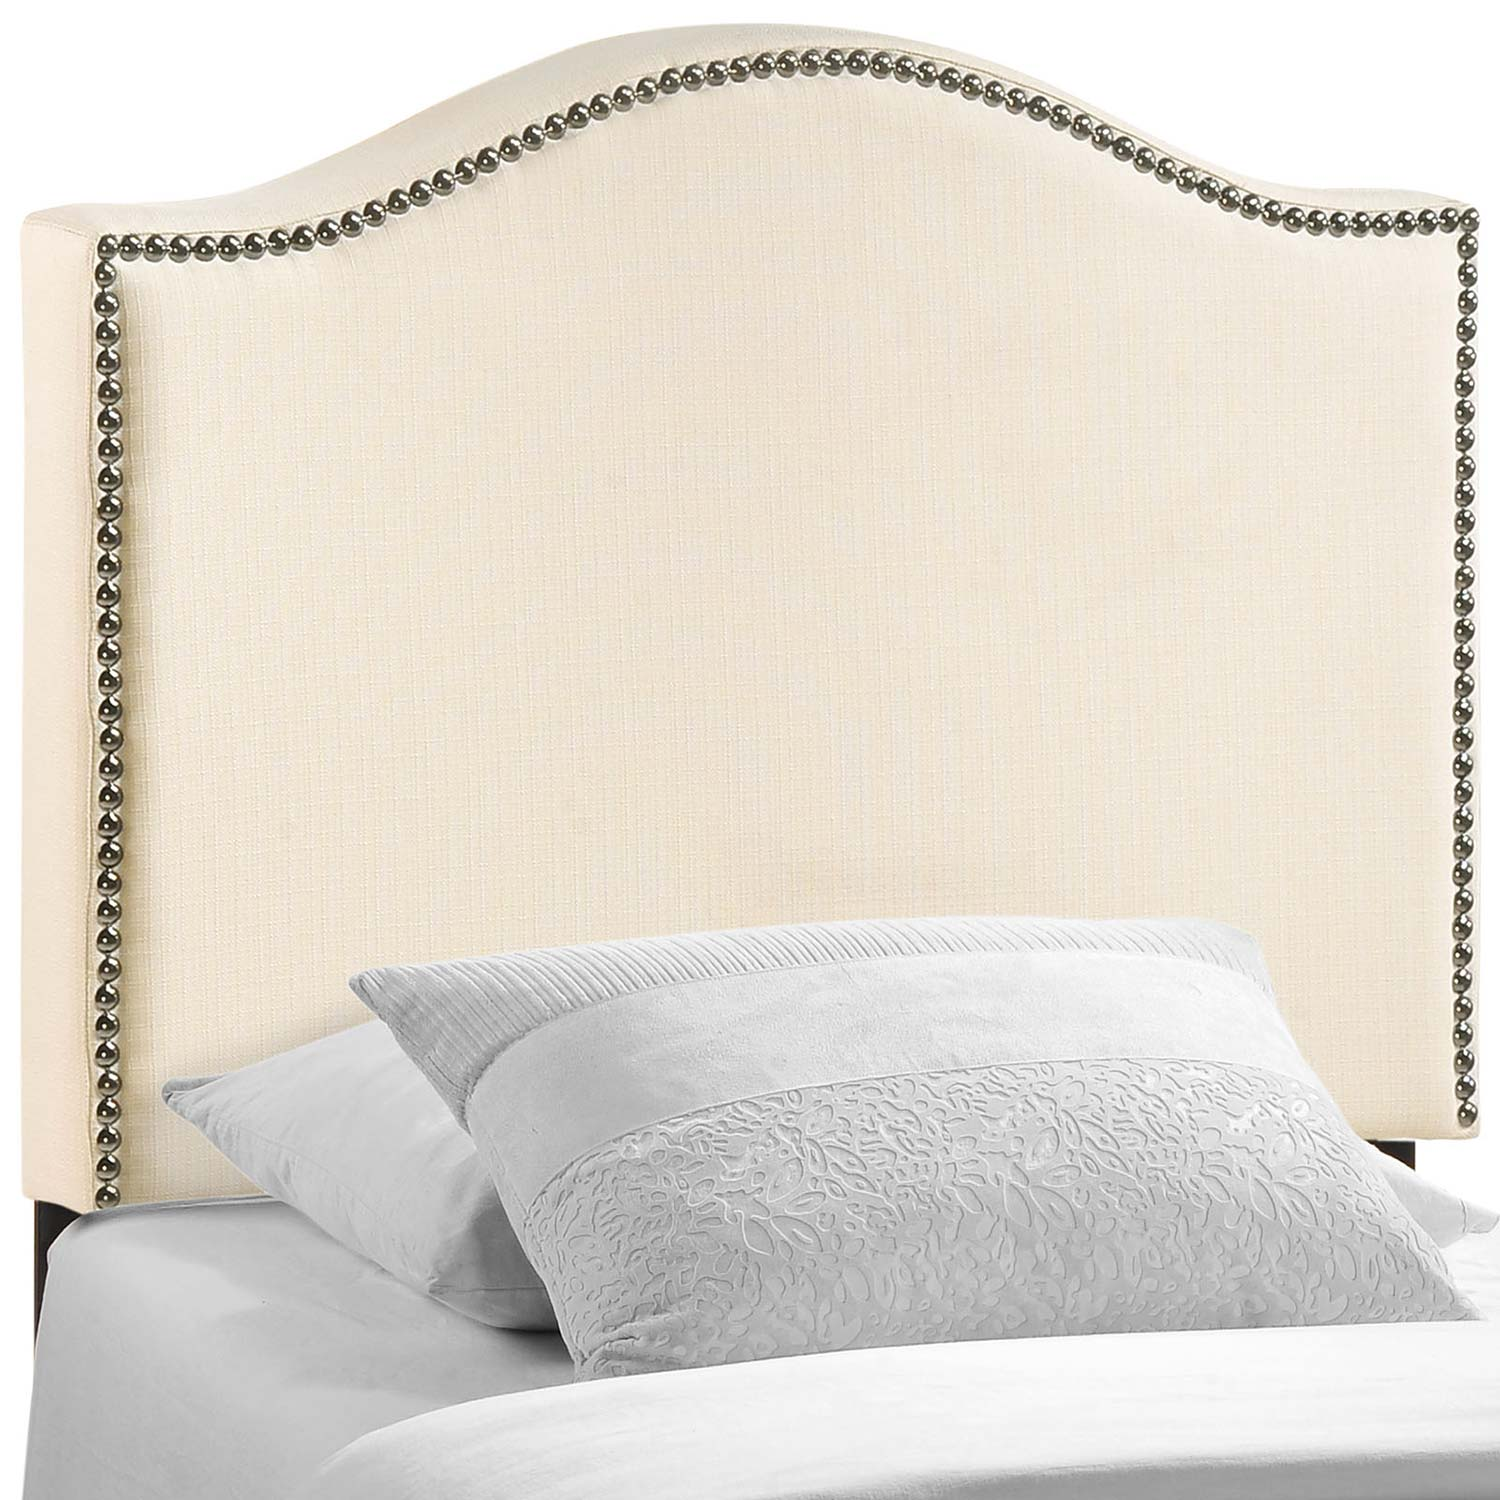 Modway Curl Nailhead Upholstered Headboard - Ivory